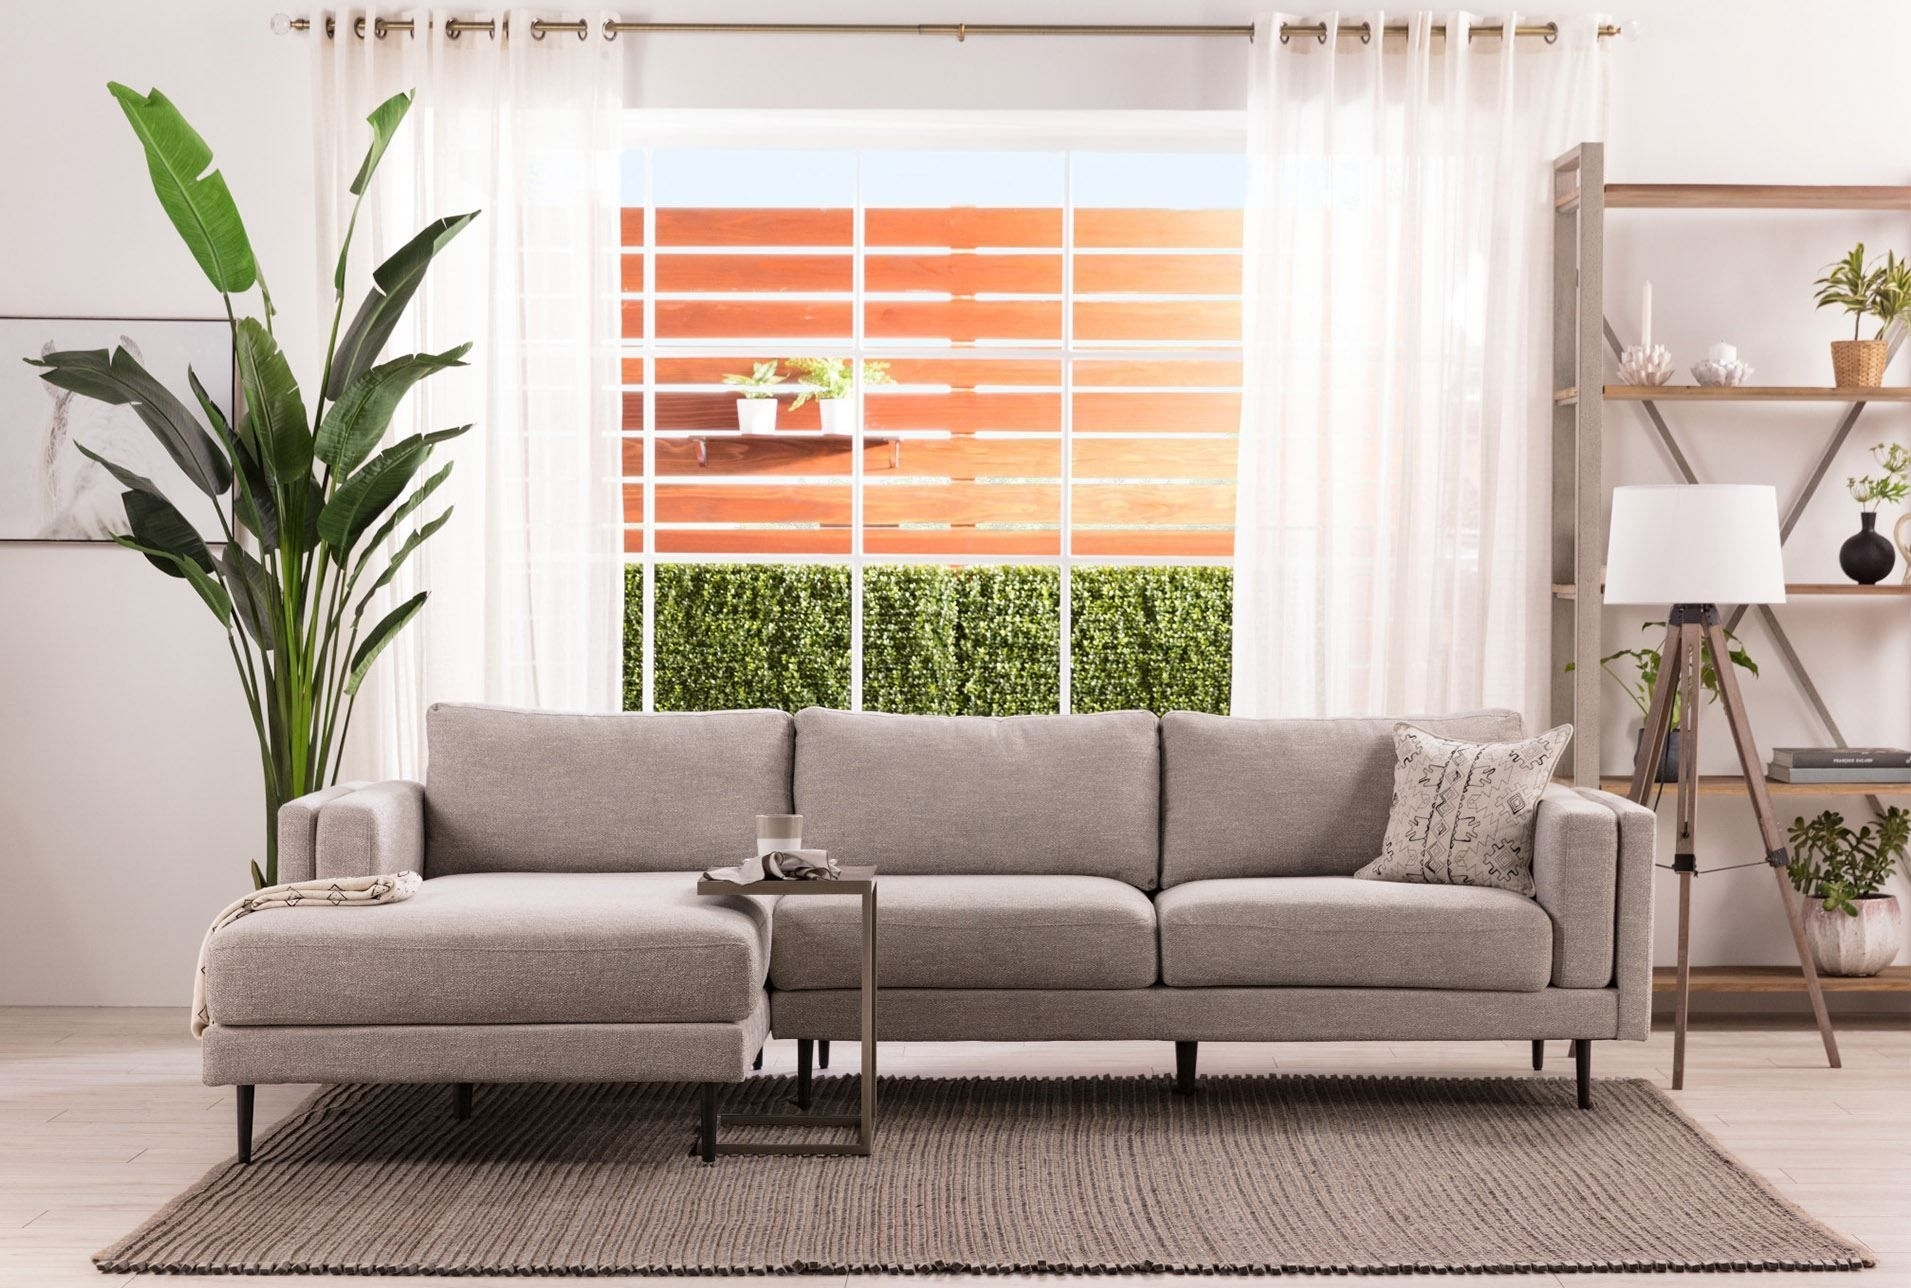 Aquarius Light Grey 2 Piece Sectional W/laf Chaise | Home With Aquarius Dark Grey 2 Piece Sectionals With Raf Chaise (Image 2 of 25)